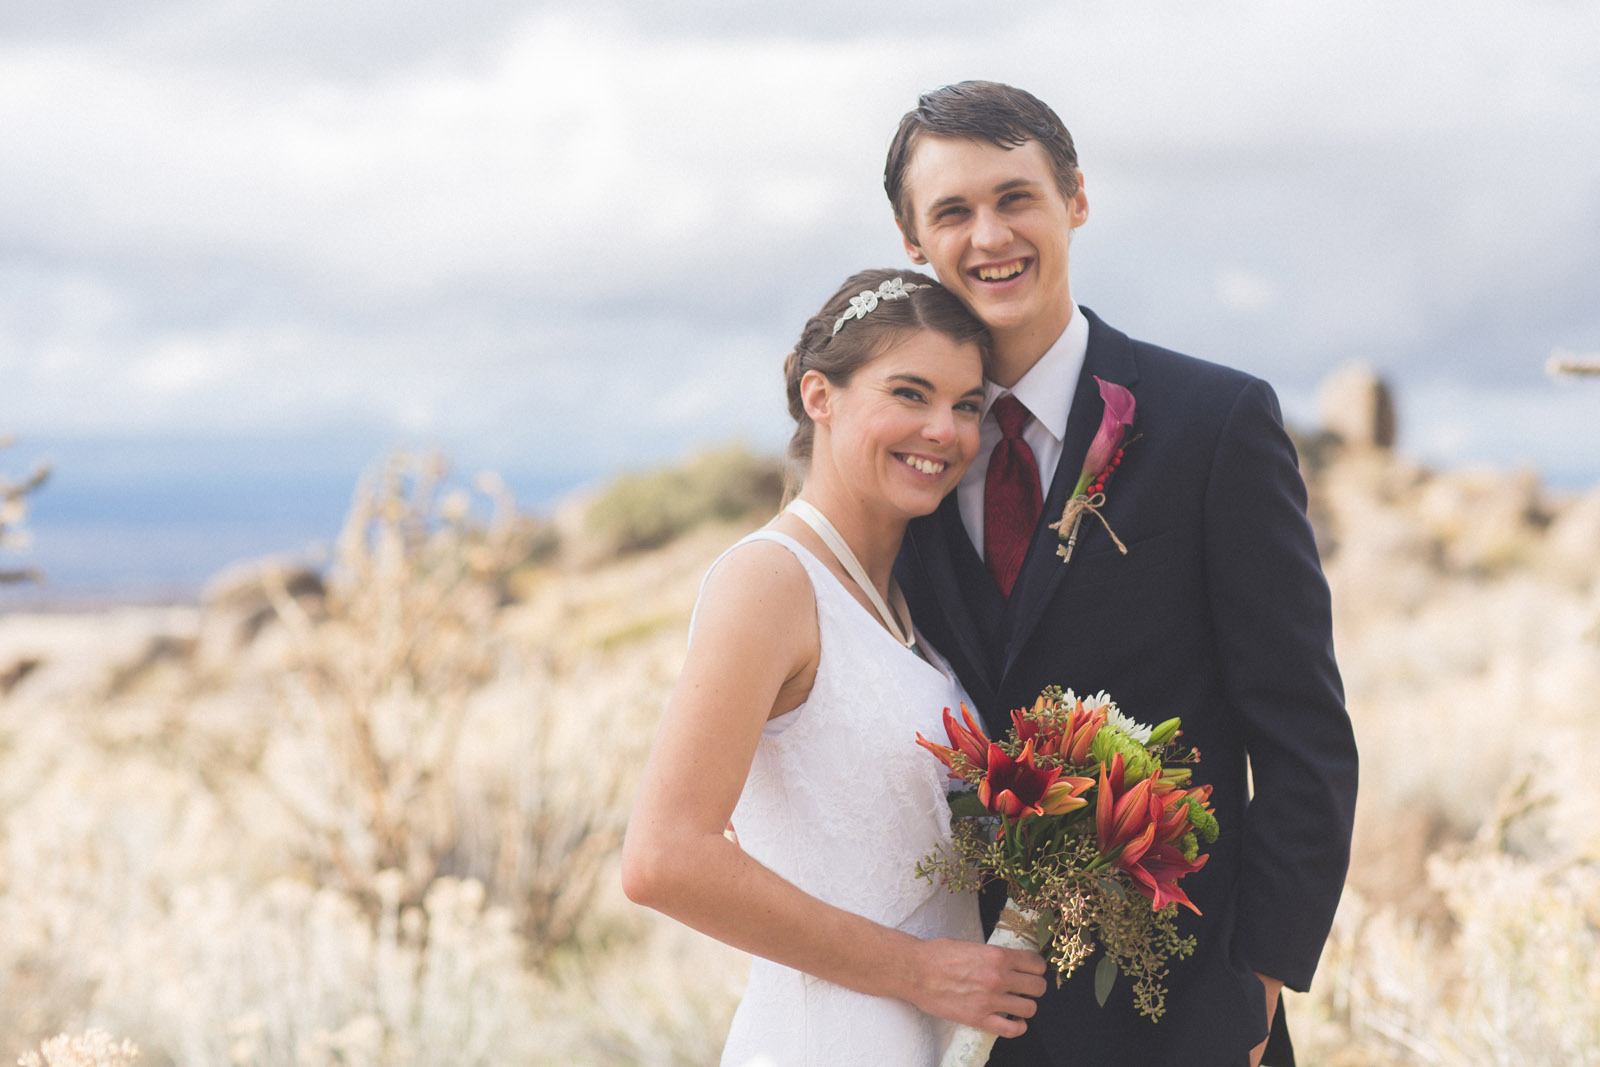 142-bride-and-groom-photos-capture-lifestyle-photography-in-sandia-mountains